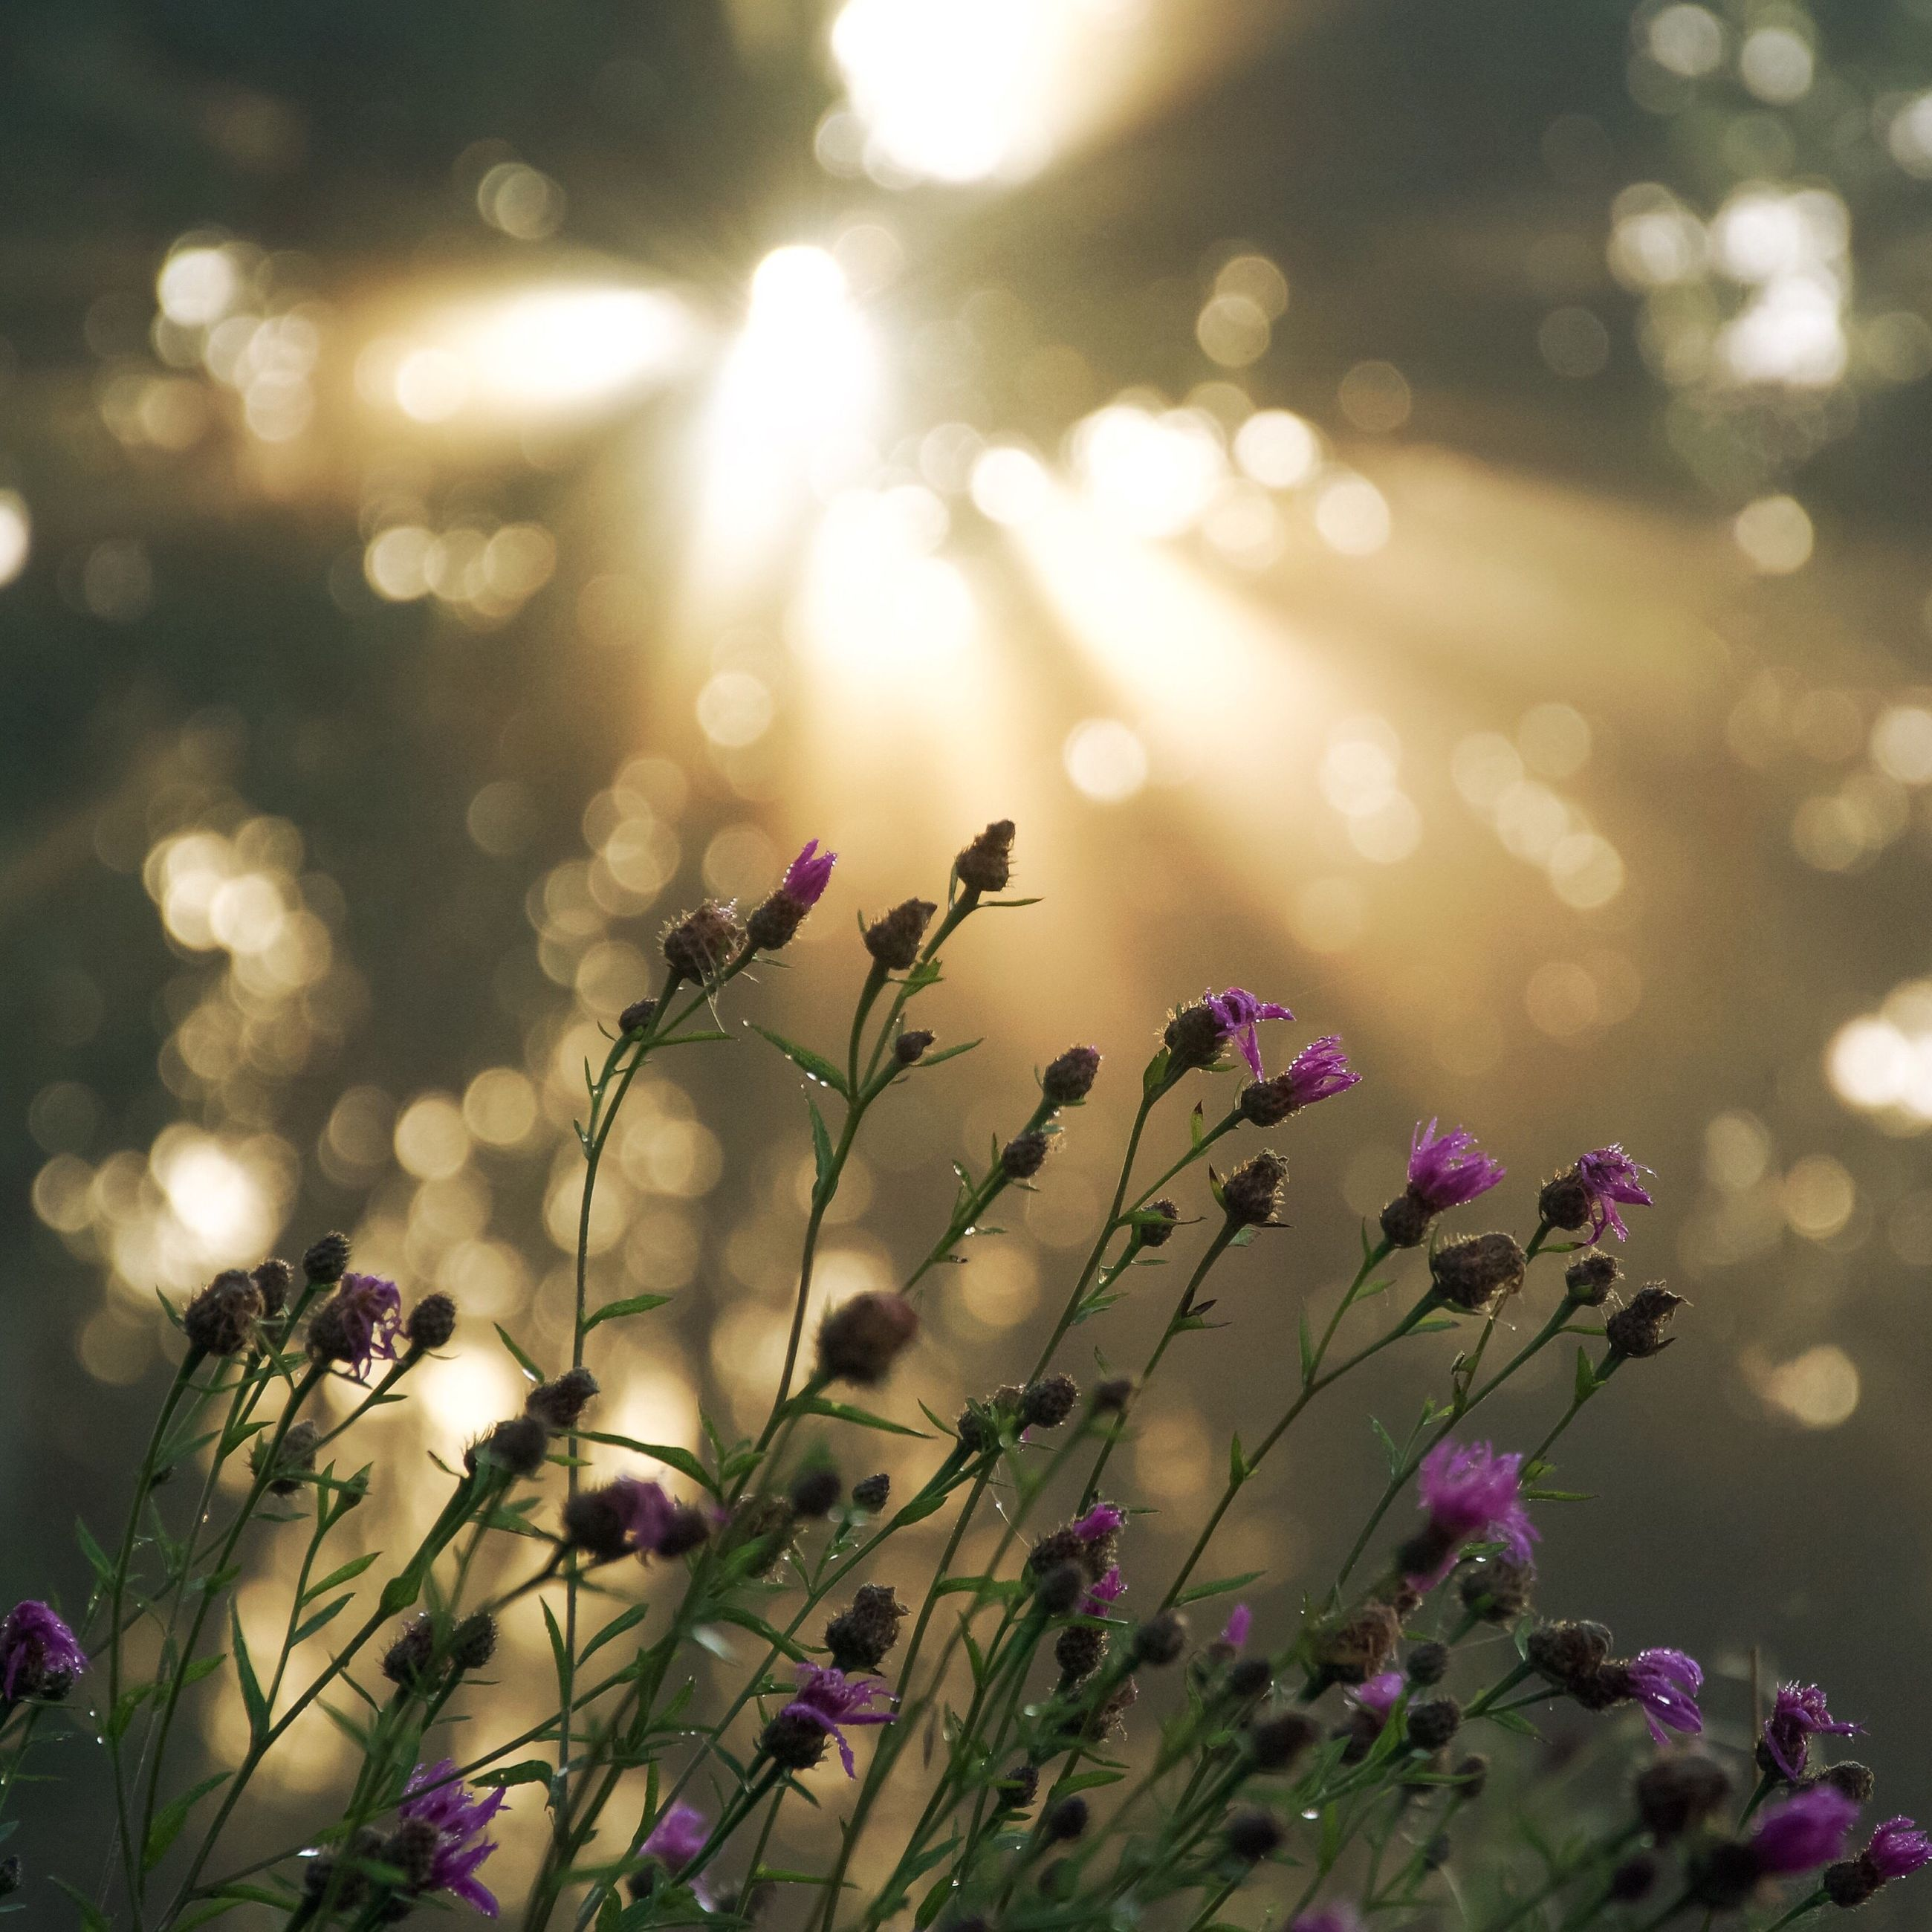 growth, flower, focus on foreground, plant, beauty in nature, freshness, lens flare, close-up, nature, fragility, sun, stem, outdoors, selective focus, no people, pink color, illuminated, tranquility, sunbeam, growing, twig, blooming, sky, petal, in bloom, defocused, botany, glowing, bright